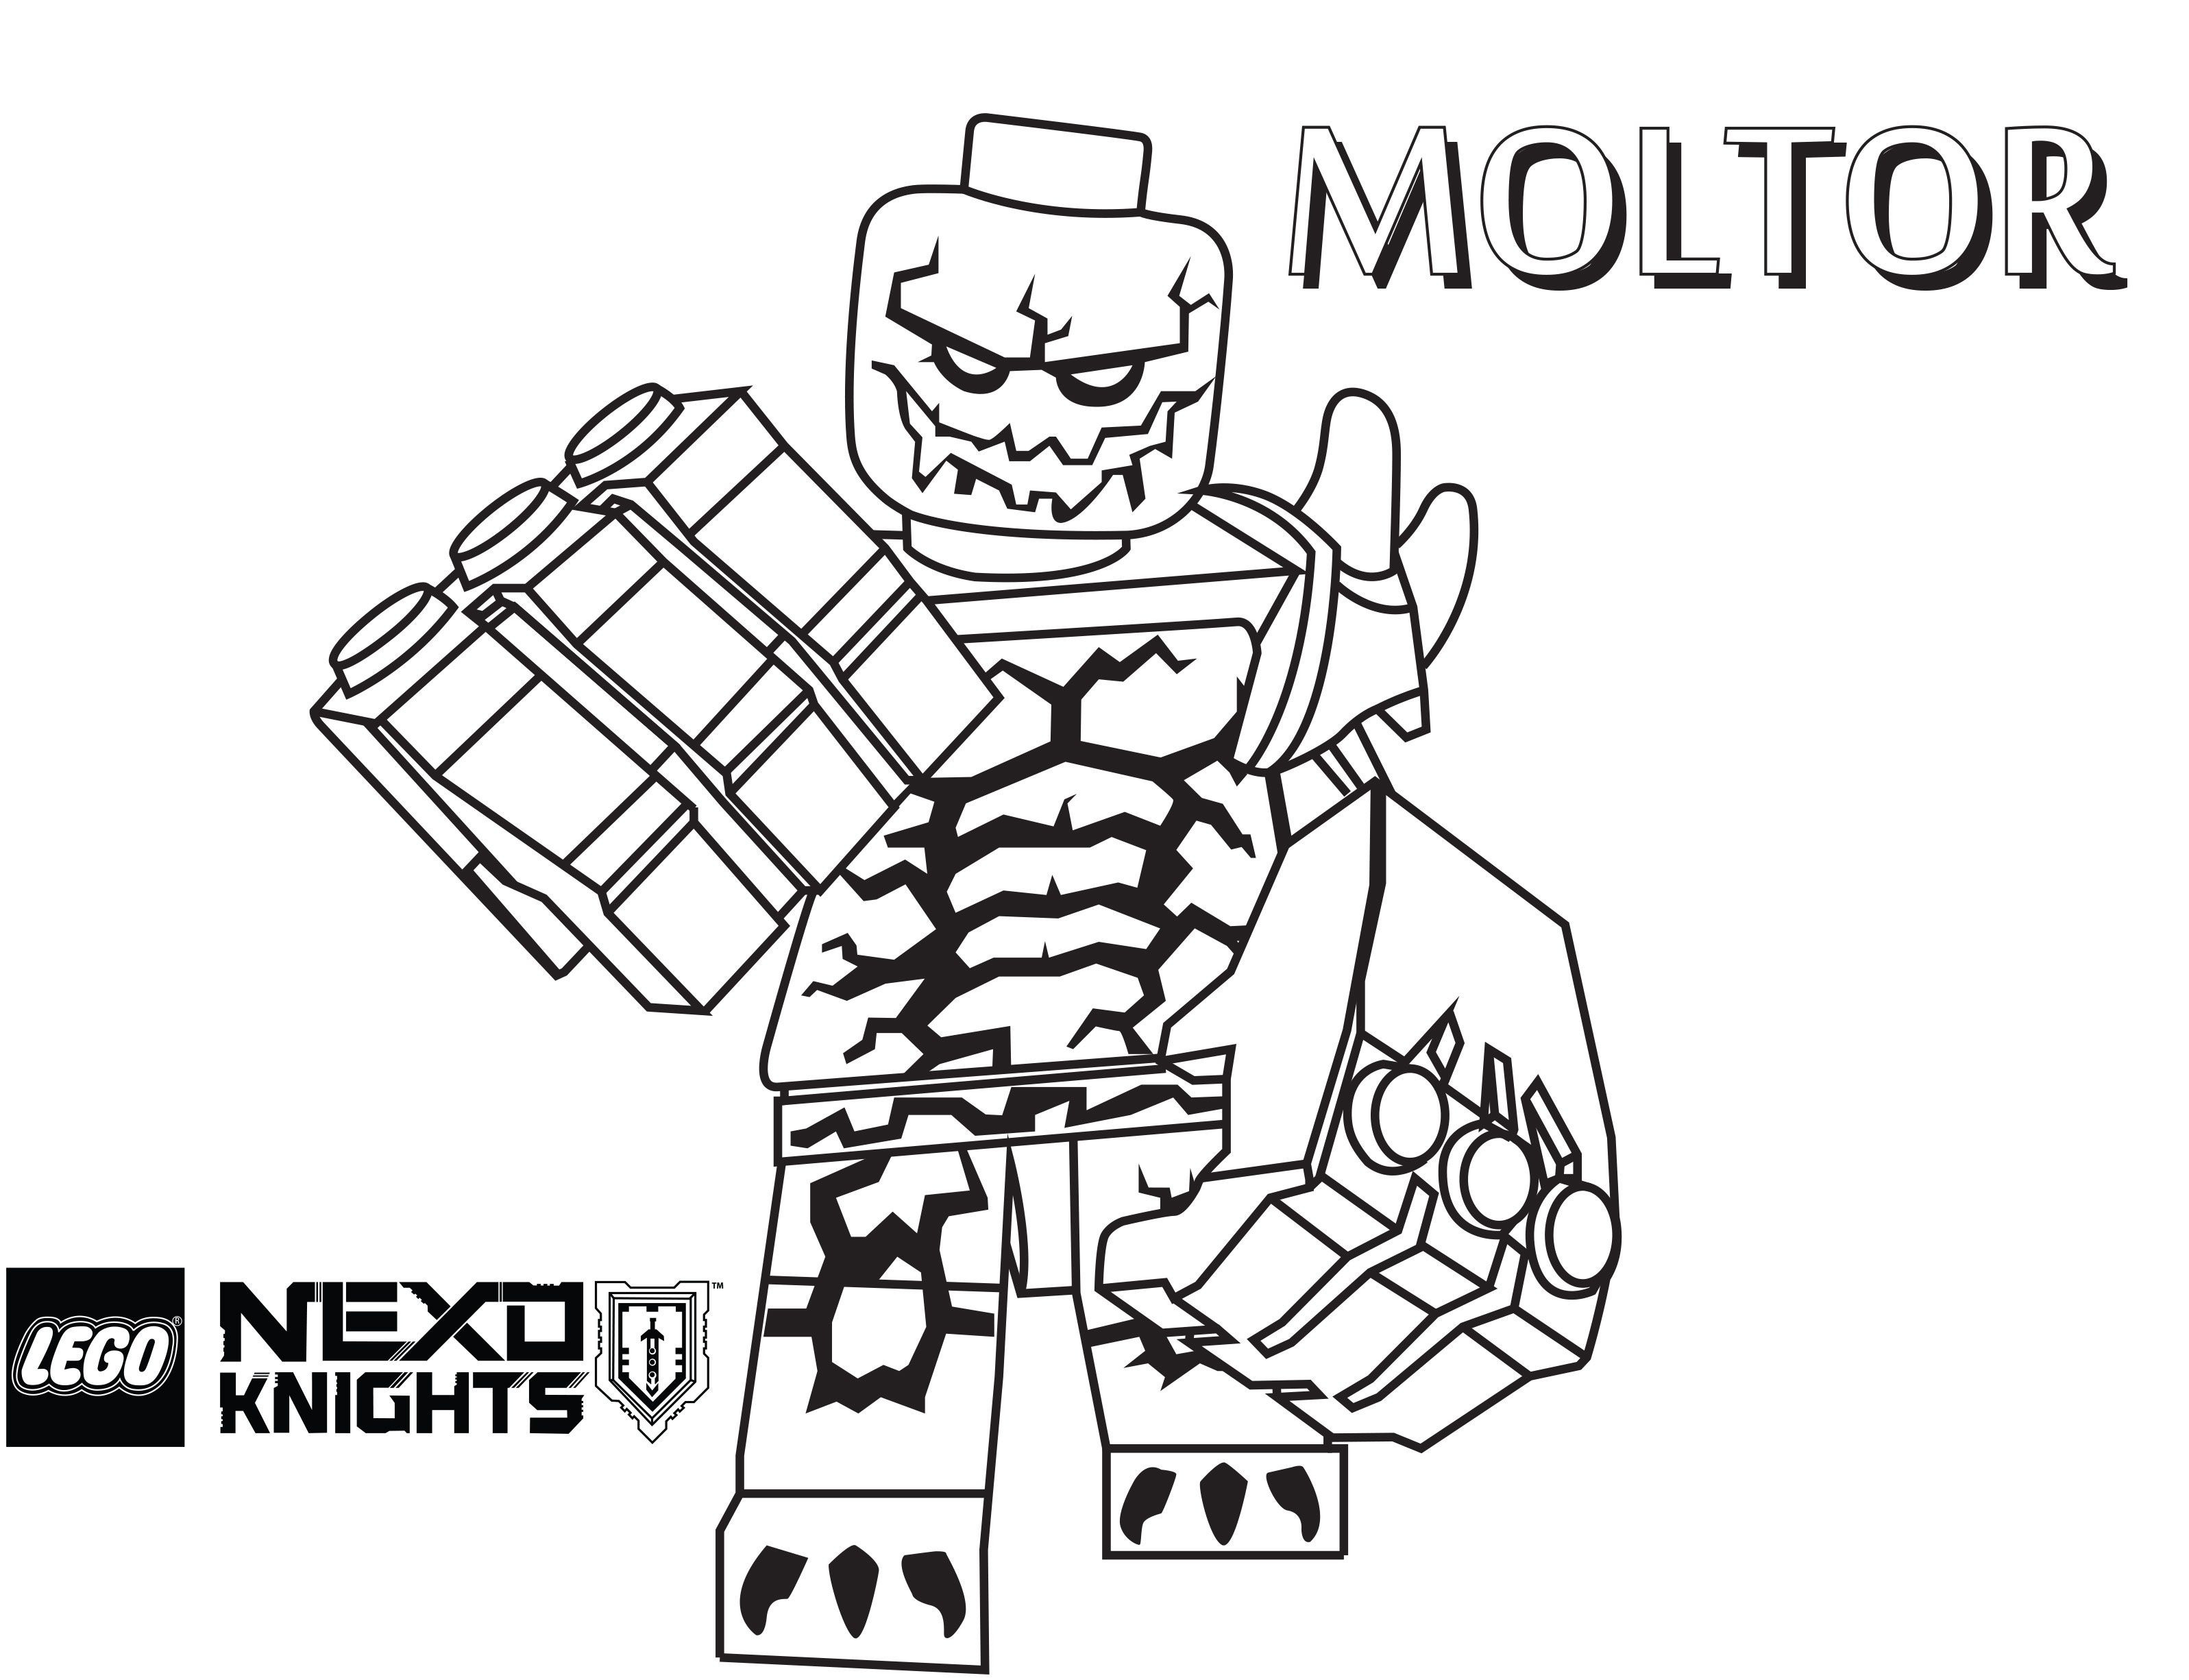 Ritter Rost Ausmalbild Einzigartig Ninjago Lego Coloring Pages 36 New Lego Superheroes Coloring Pages Stock